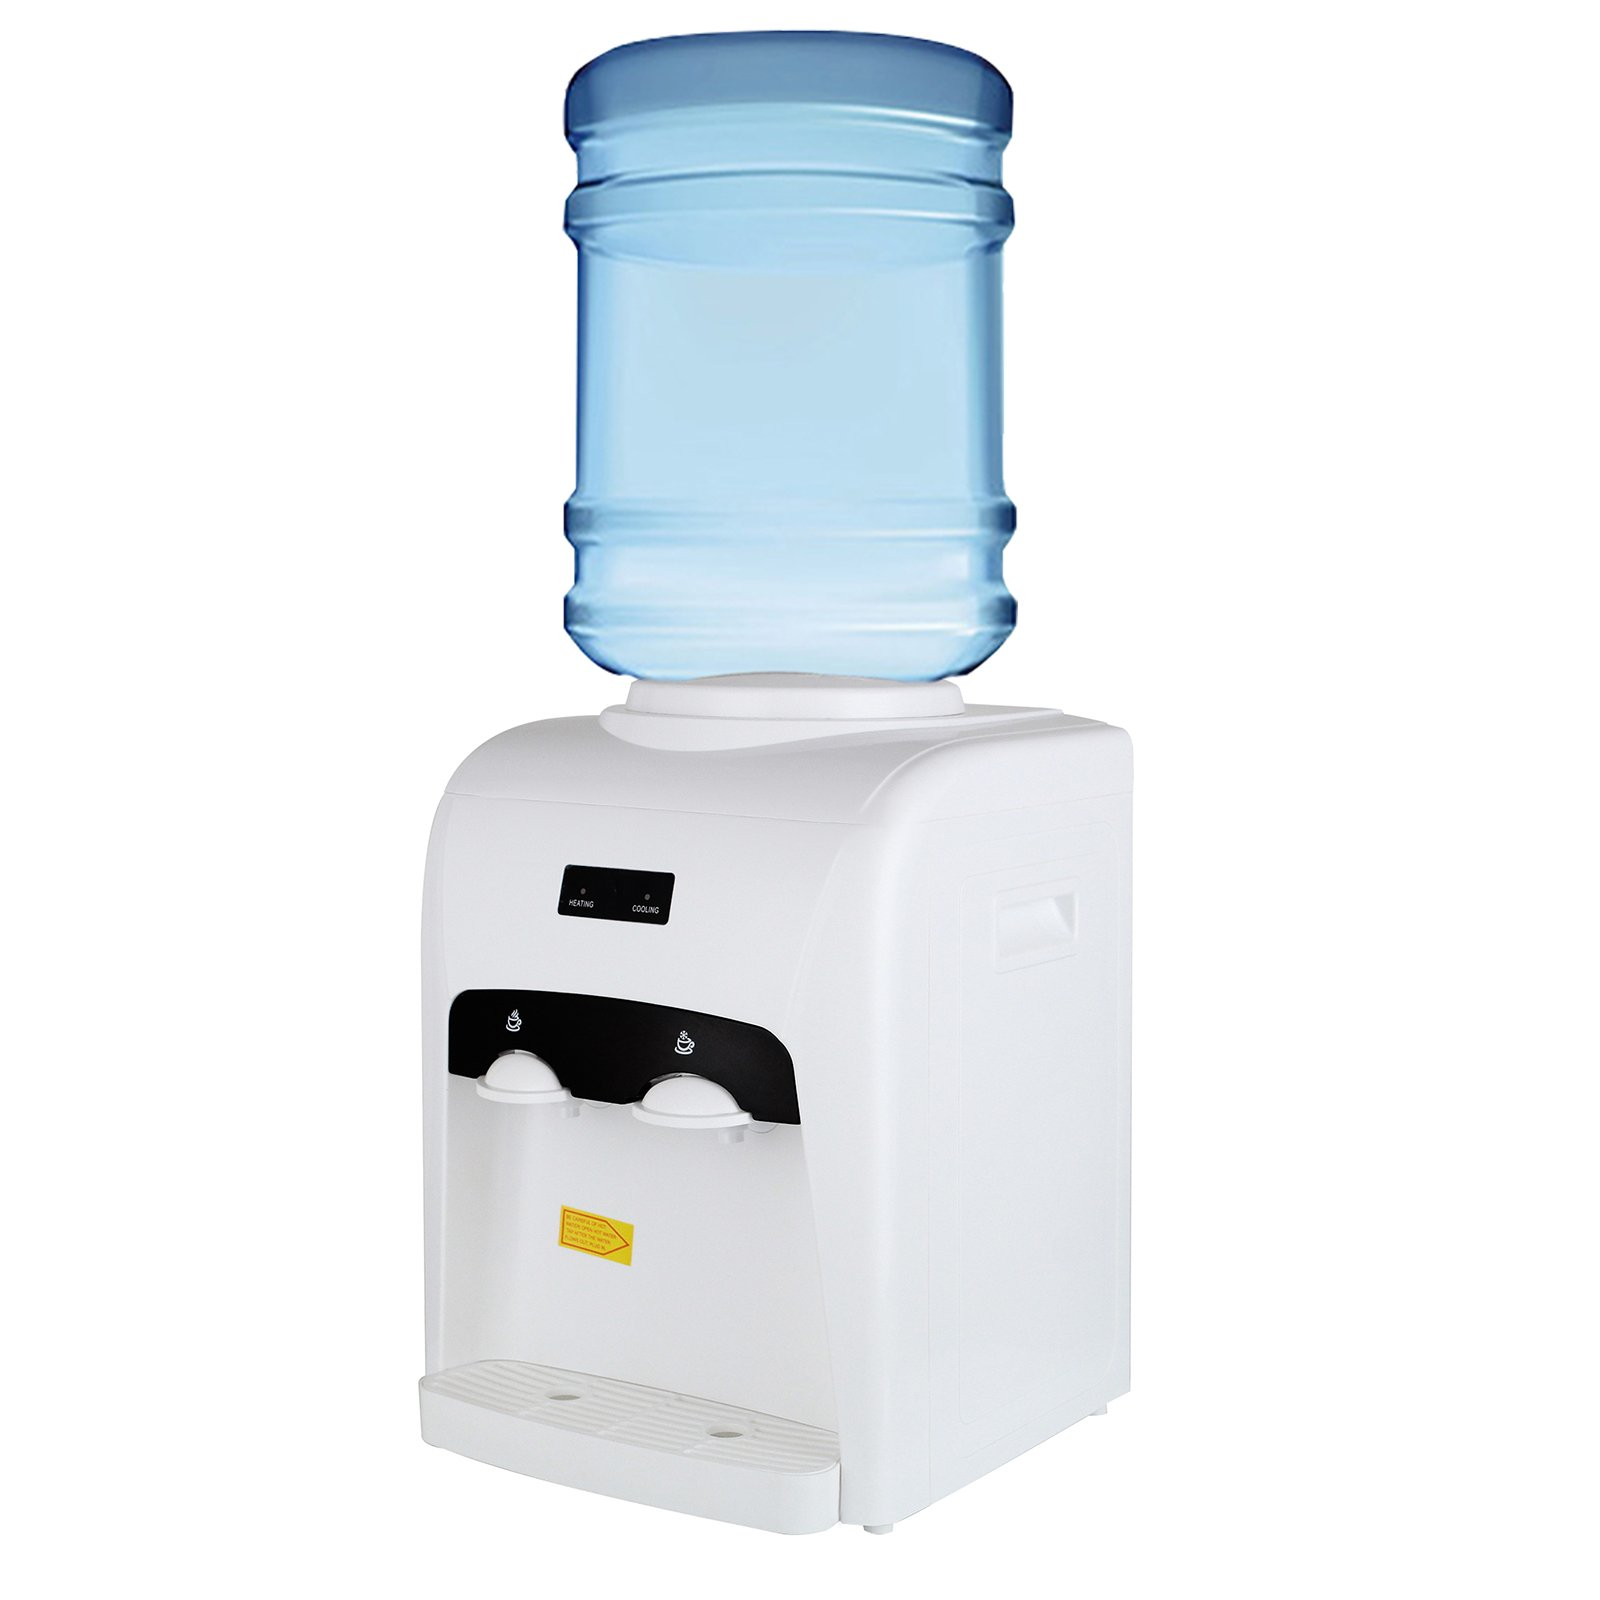 KUPPET Electric Hot Cold Water Cooler Dispenser Counter Top Home Office Use 3-5 Gallon white (15.75inch / Weight 9lbs)